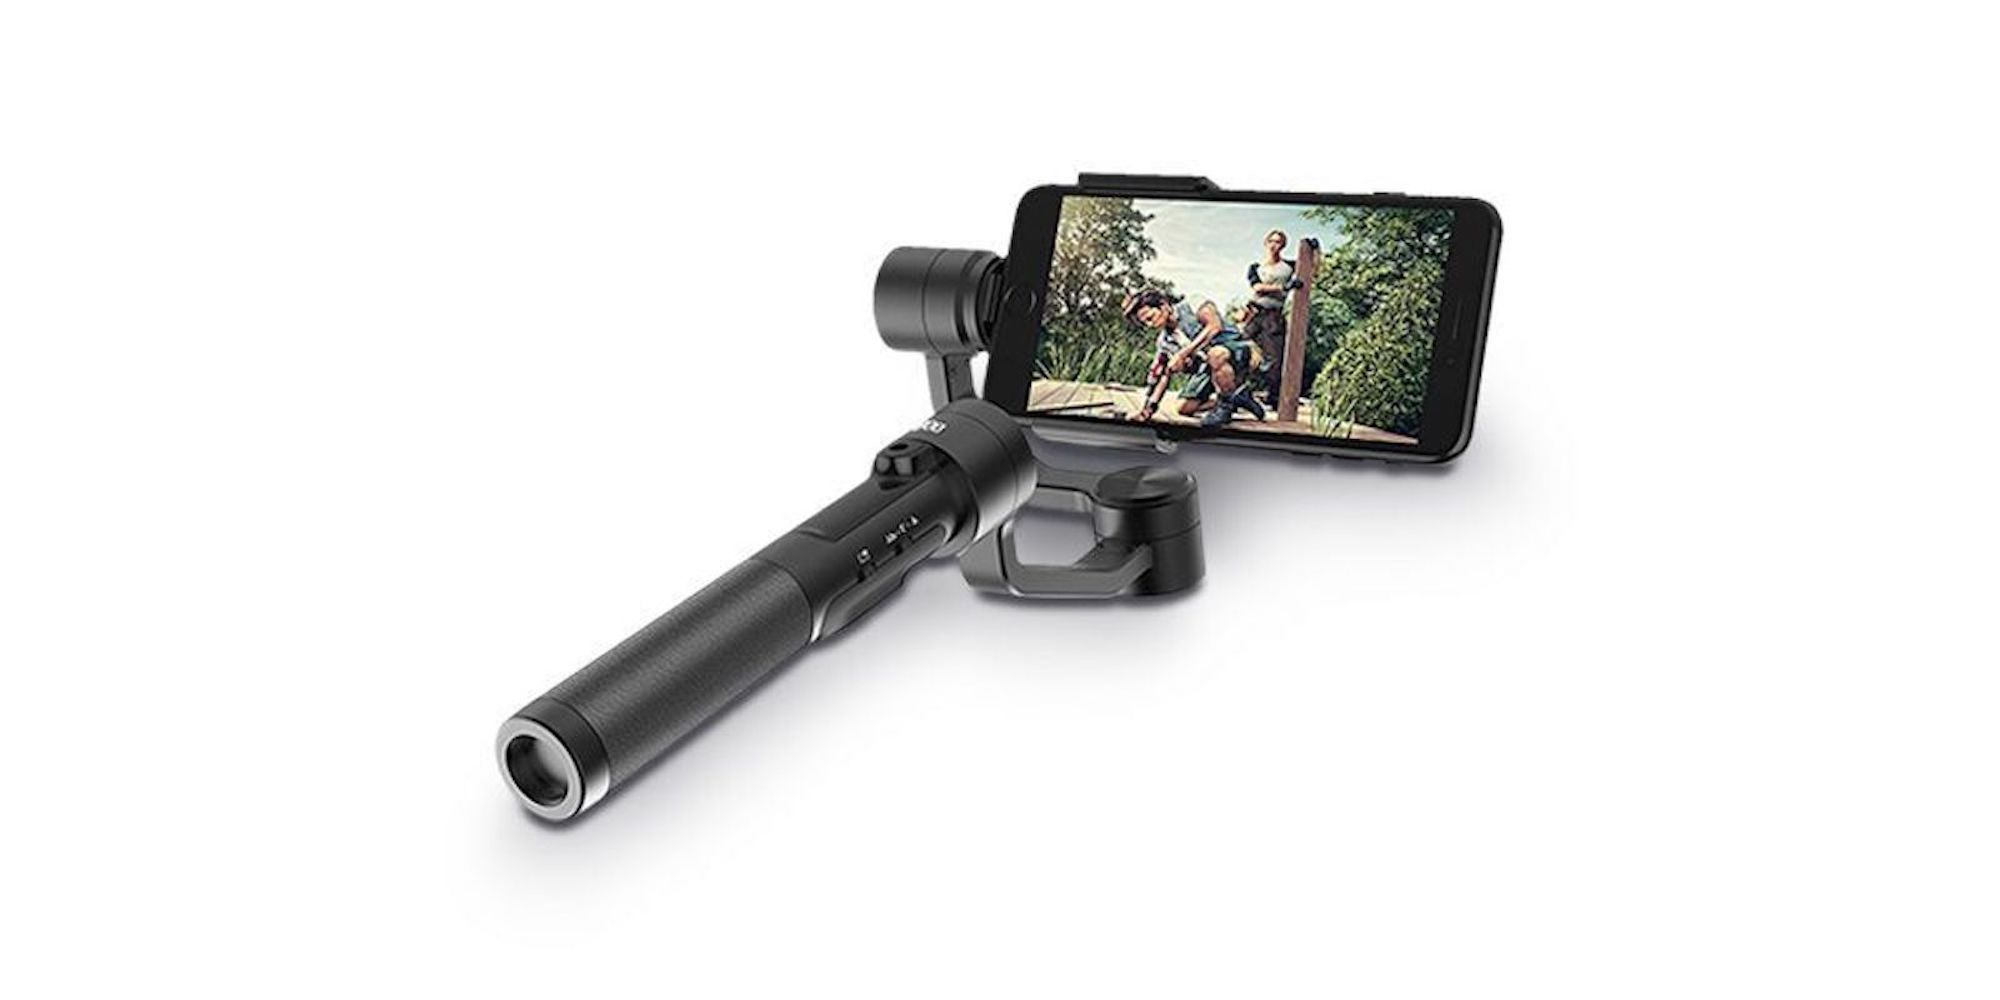 Take smooth videos with the Rigiet Smartphone Gimbal for $94 shipped